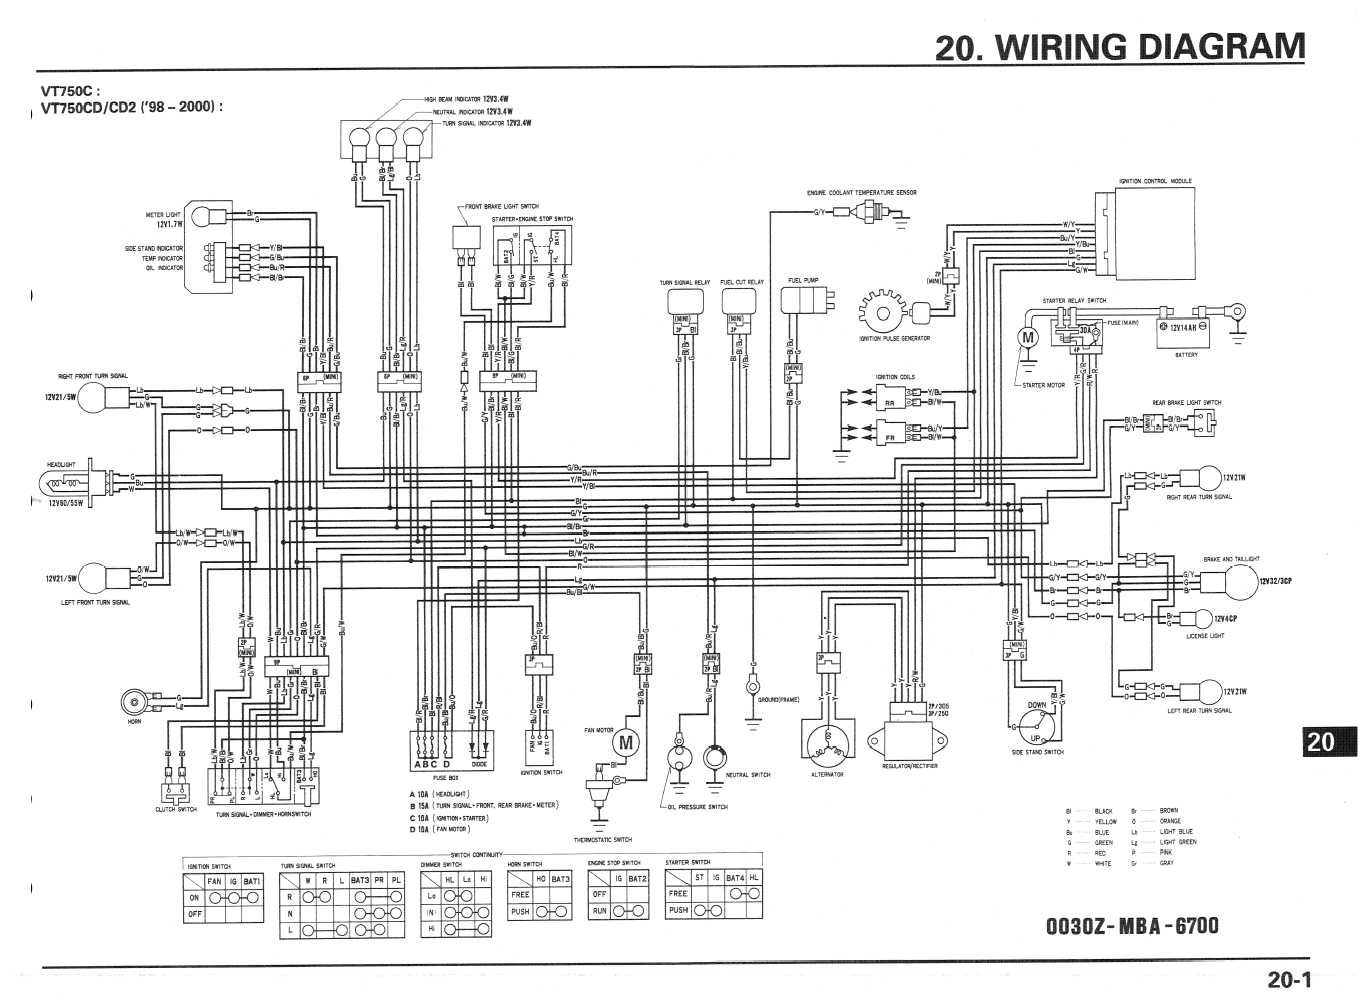 honda shadow sabre wiring diagram strange electrical issue no headlight and will not start  strange electrical issue no headlight and will not start